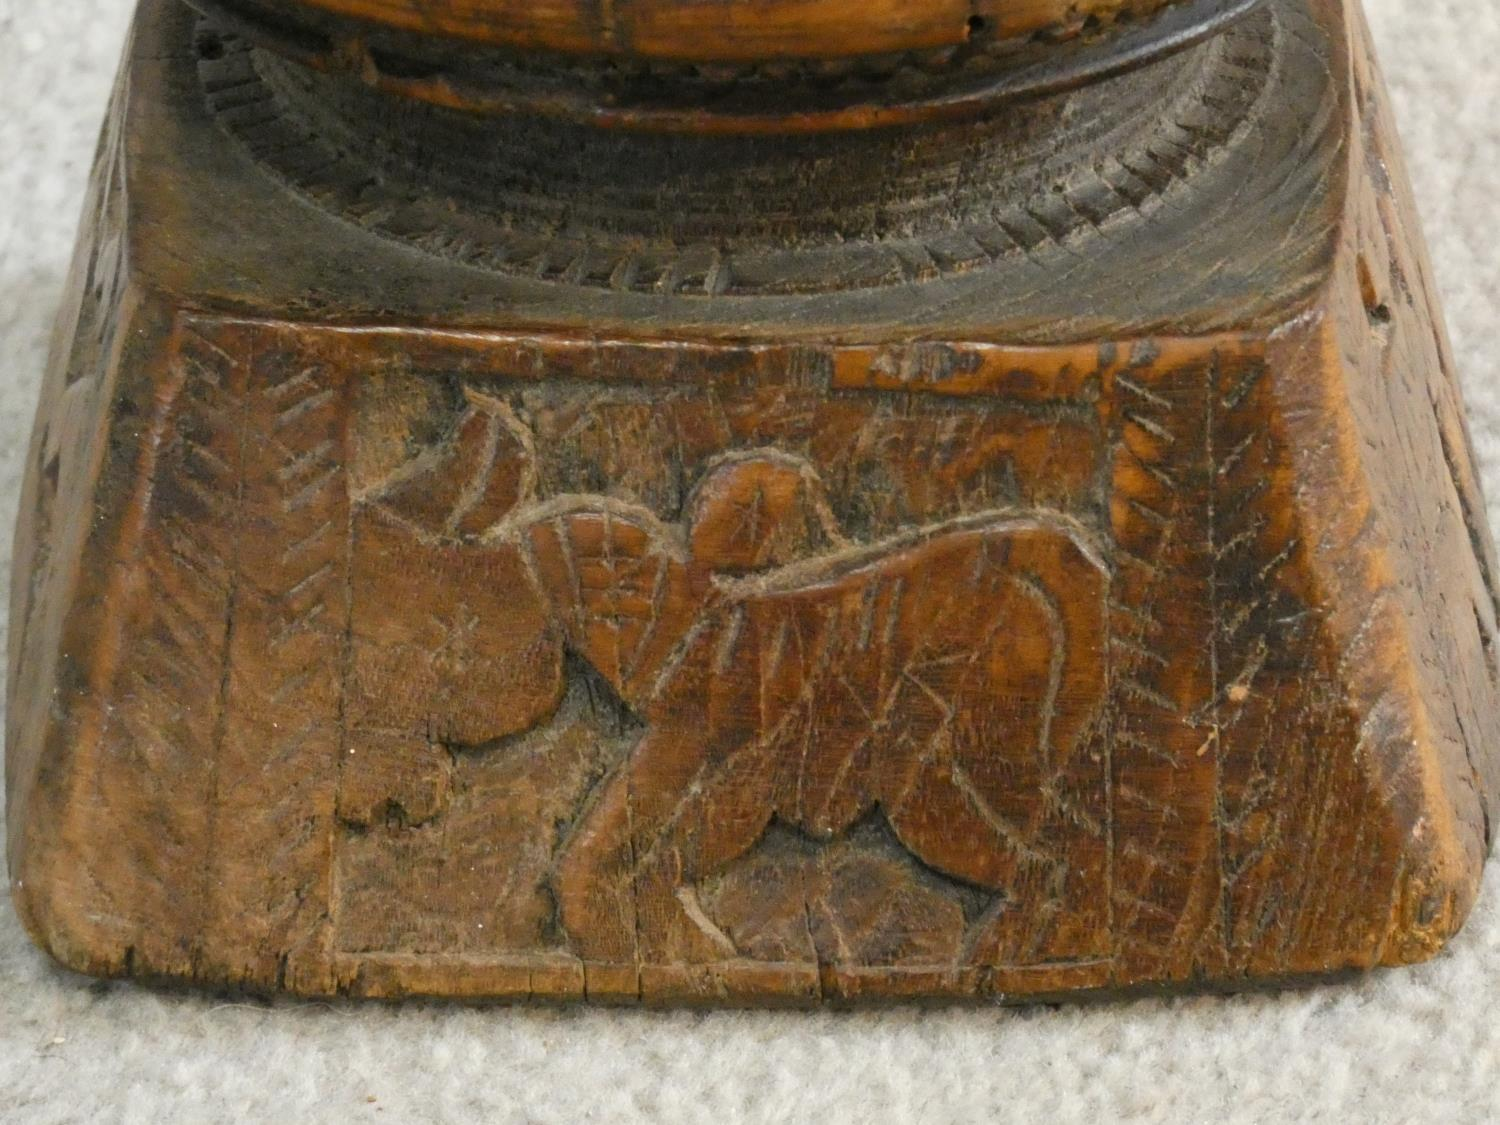 An antique Indian hardwood seed sowing tool with carved detailing of animals and people. H.13 W.17 - Image 4 of 8